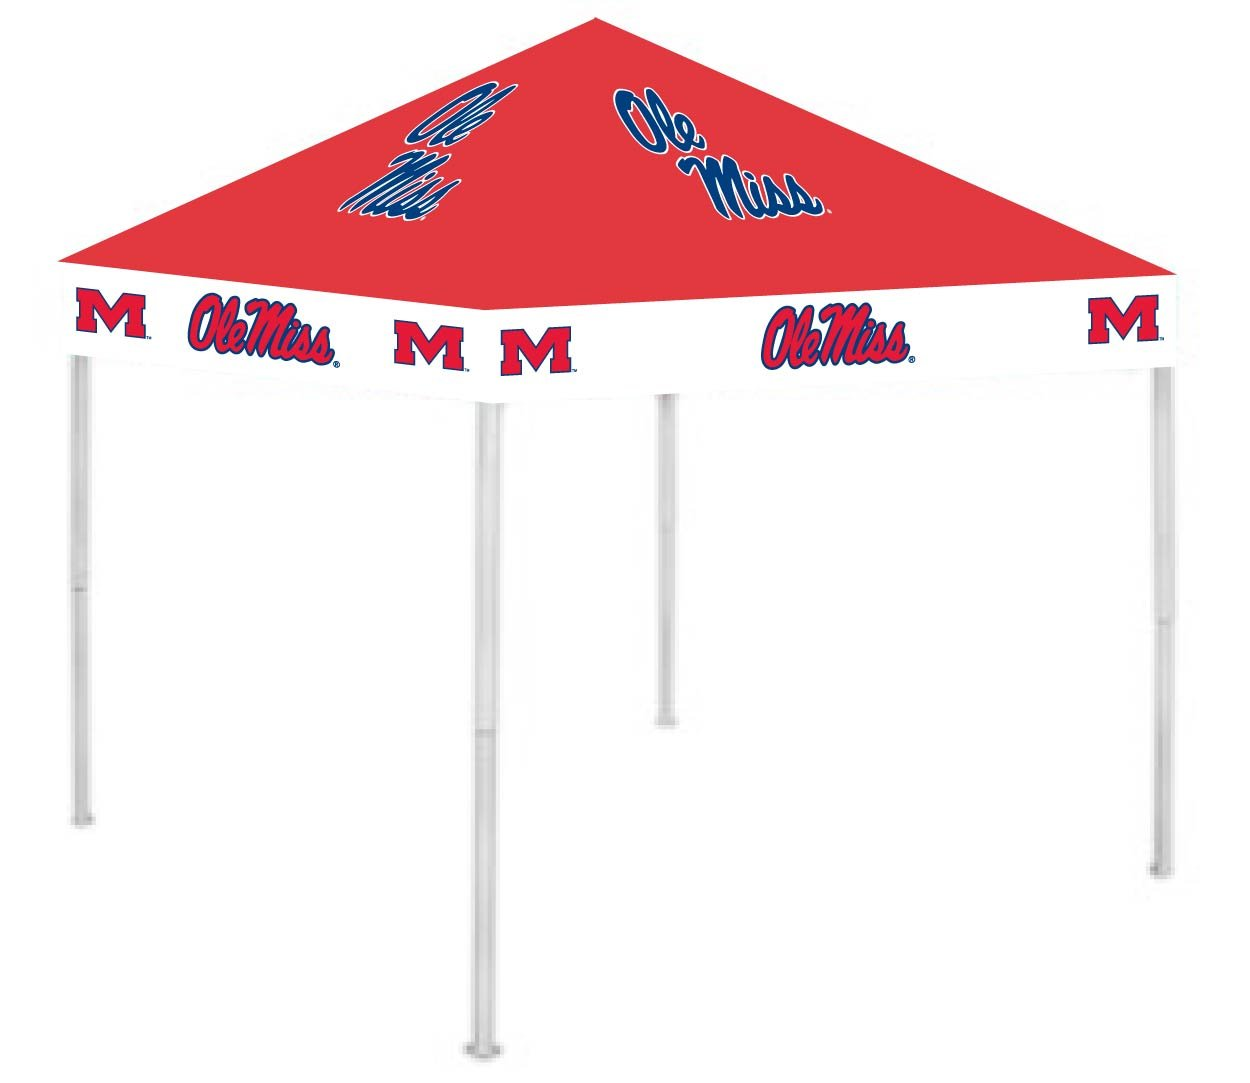 Rivalry RV275-5000 9' x 9' Polyester Fabric Mississippi Canopy B001AZR21Y 9 x 9|Ole Miss Rebels Ole Miss Rebels 9 x 9